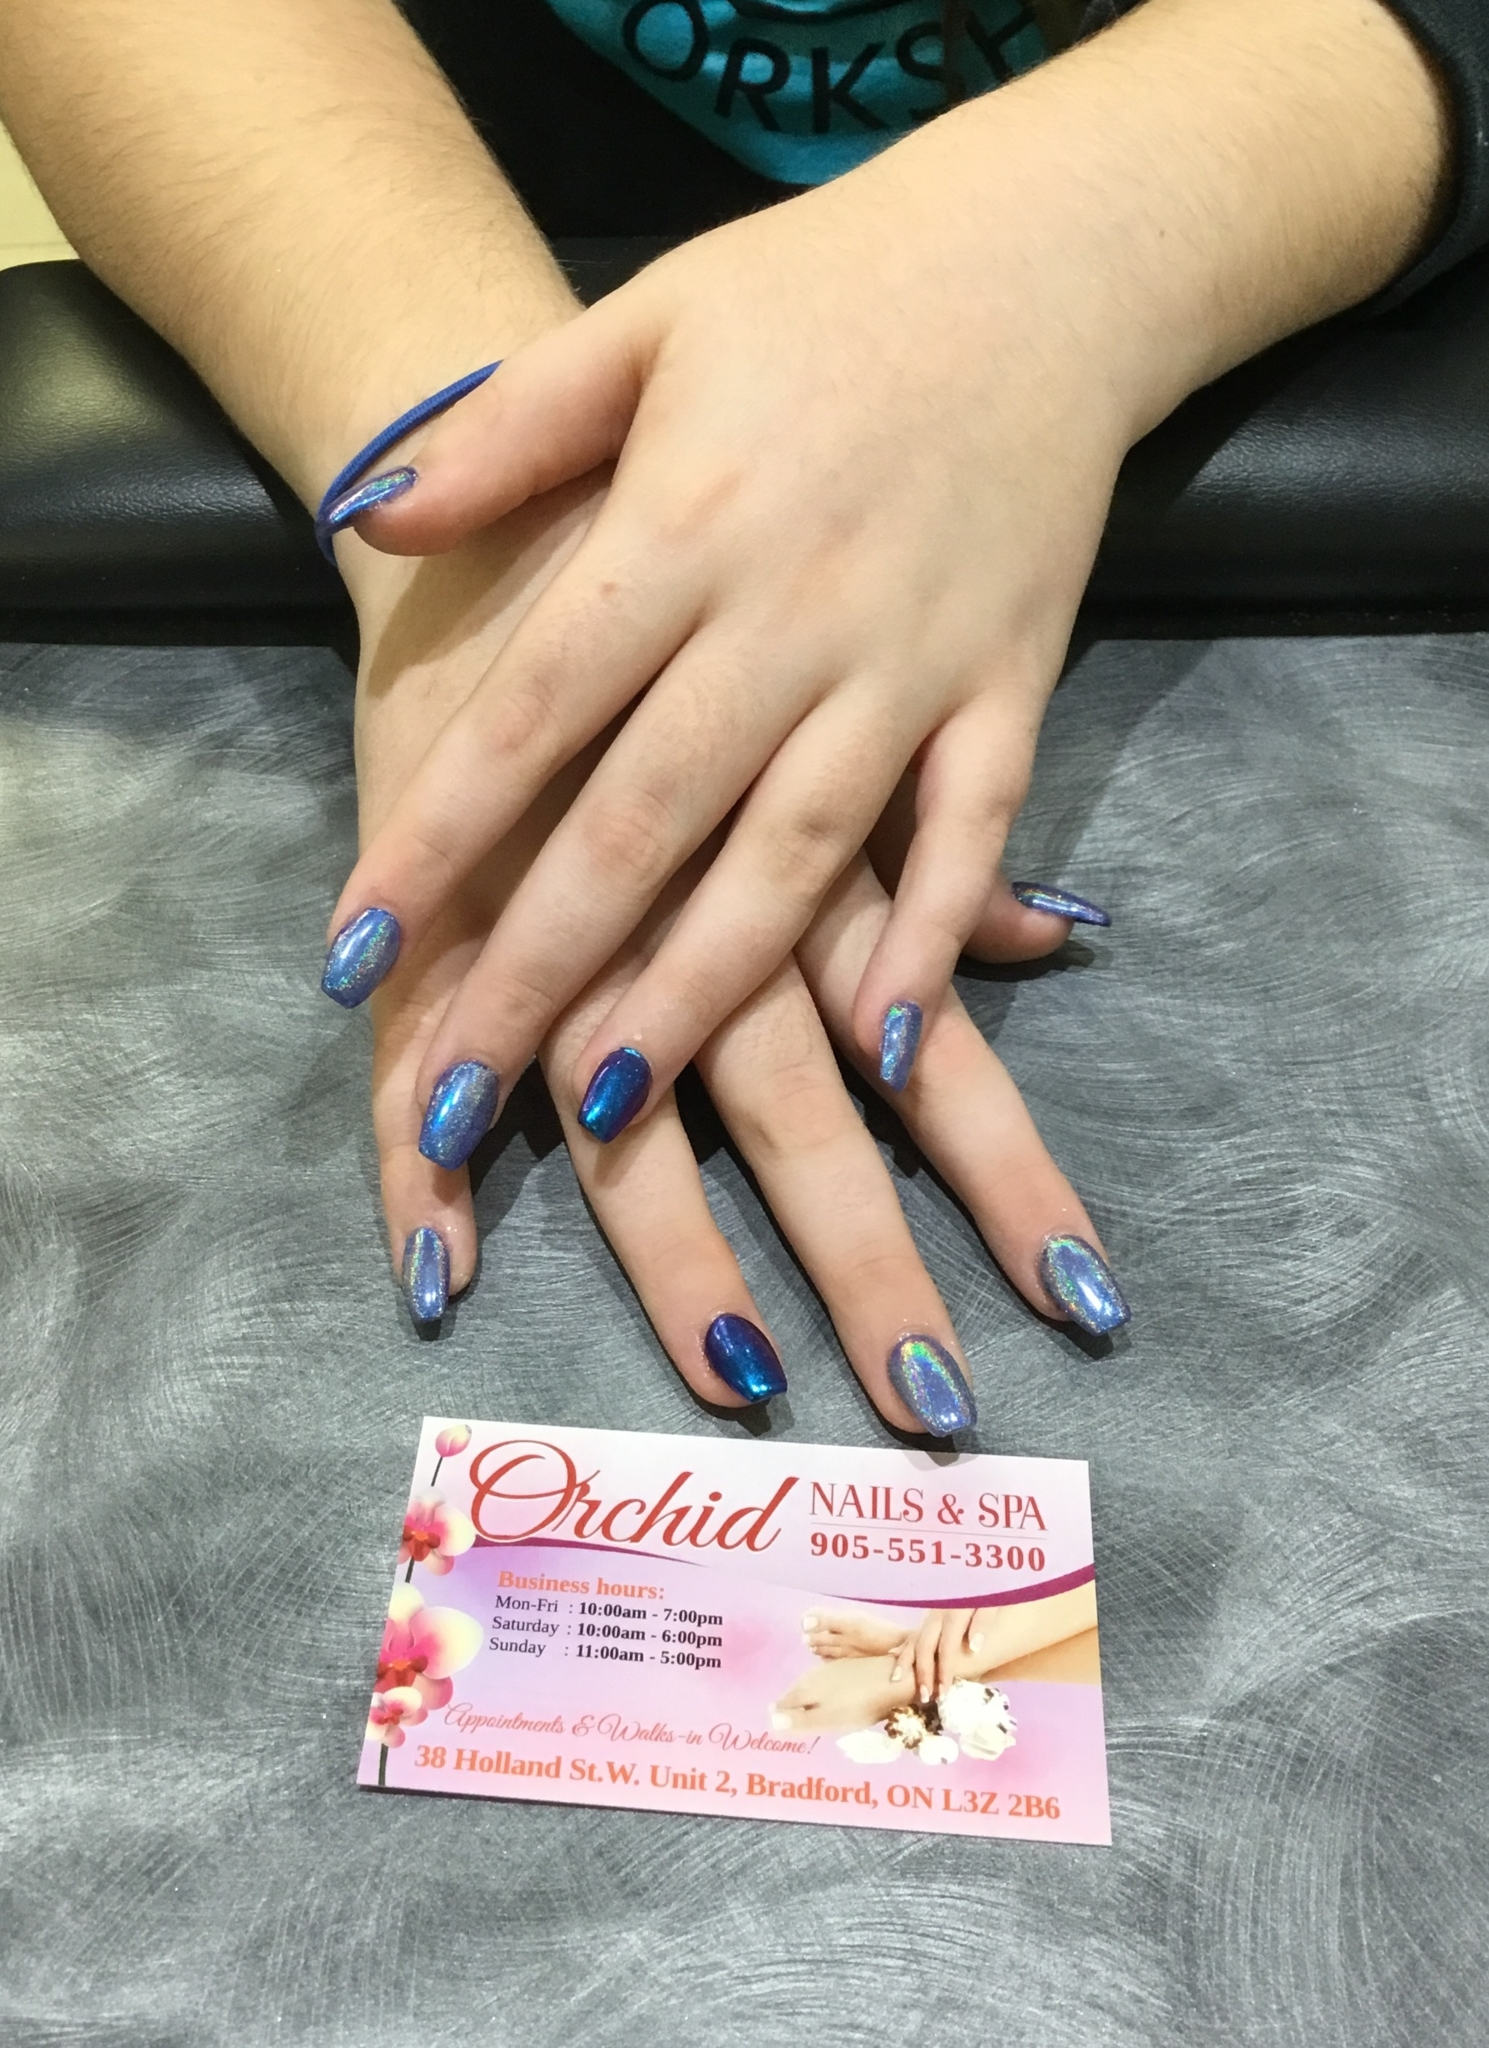 Cozy nails spa toronto nail ftempo - Nail salon marylebone ...